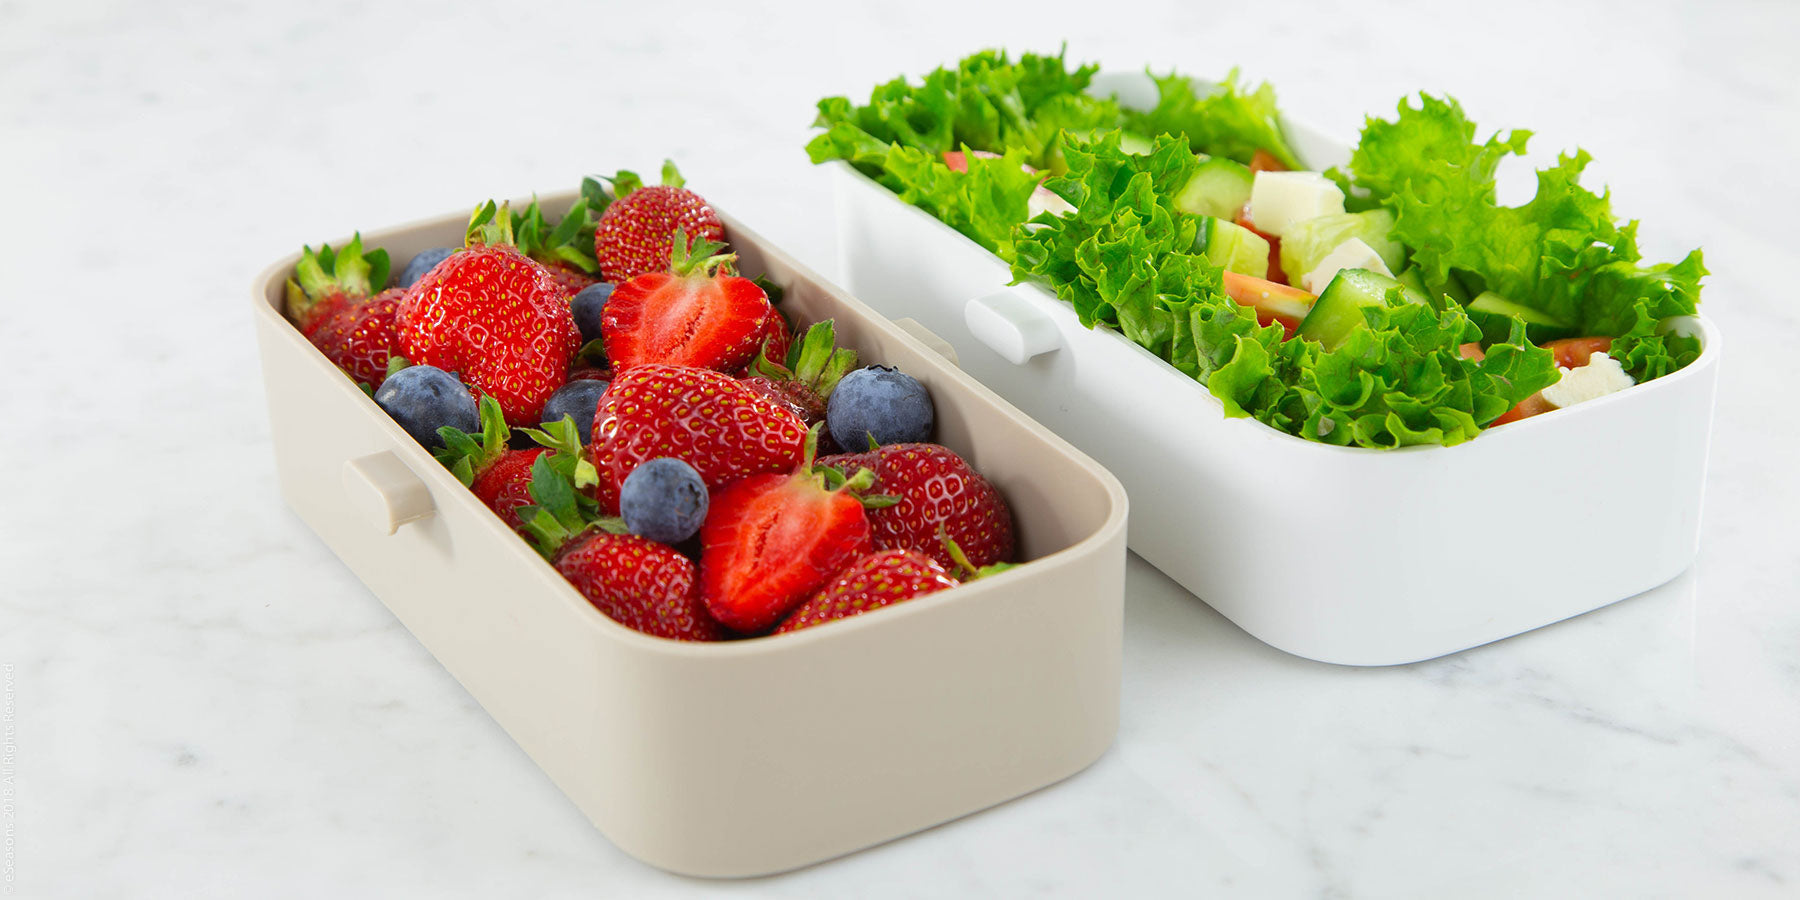 Gorgeous food photography: eSeasons Bento Lunchbox in Warm Grey with appetizing lunch of feta & tomato salad, fruit with strawberries